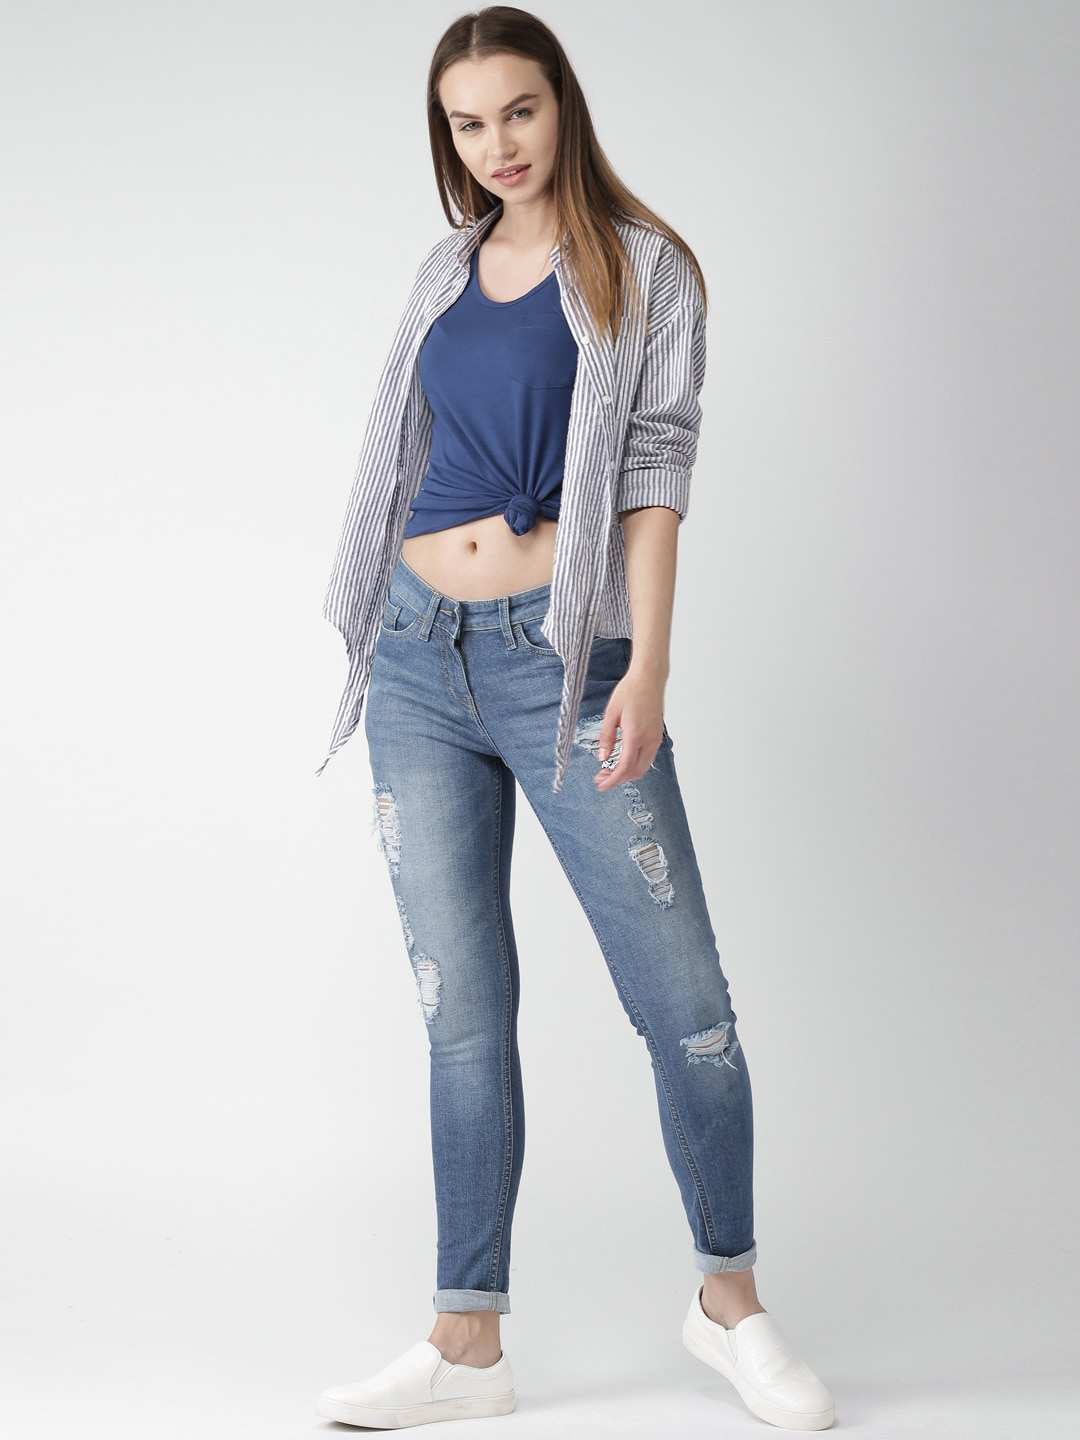 a1d5fabe22 Ripped Jeans - Shop for Ripped Jeans Online in India